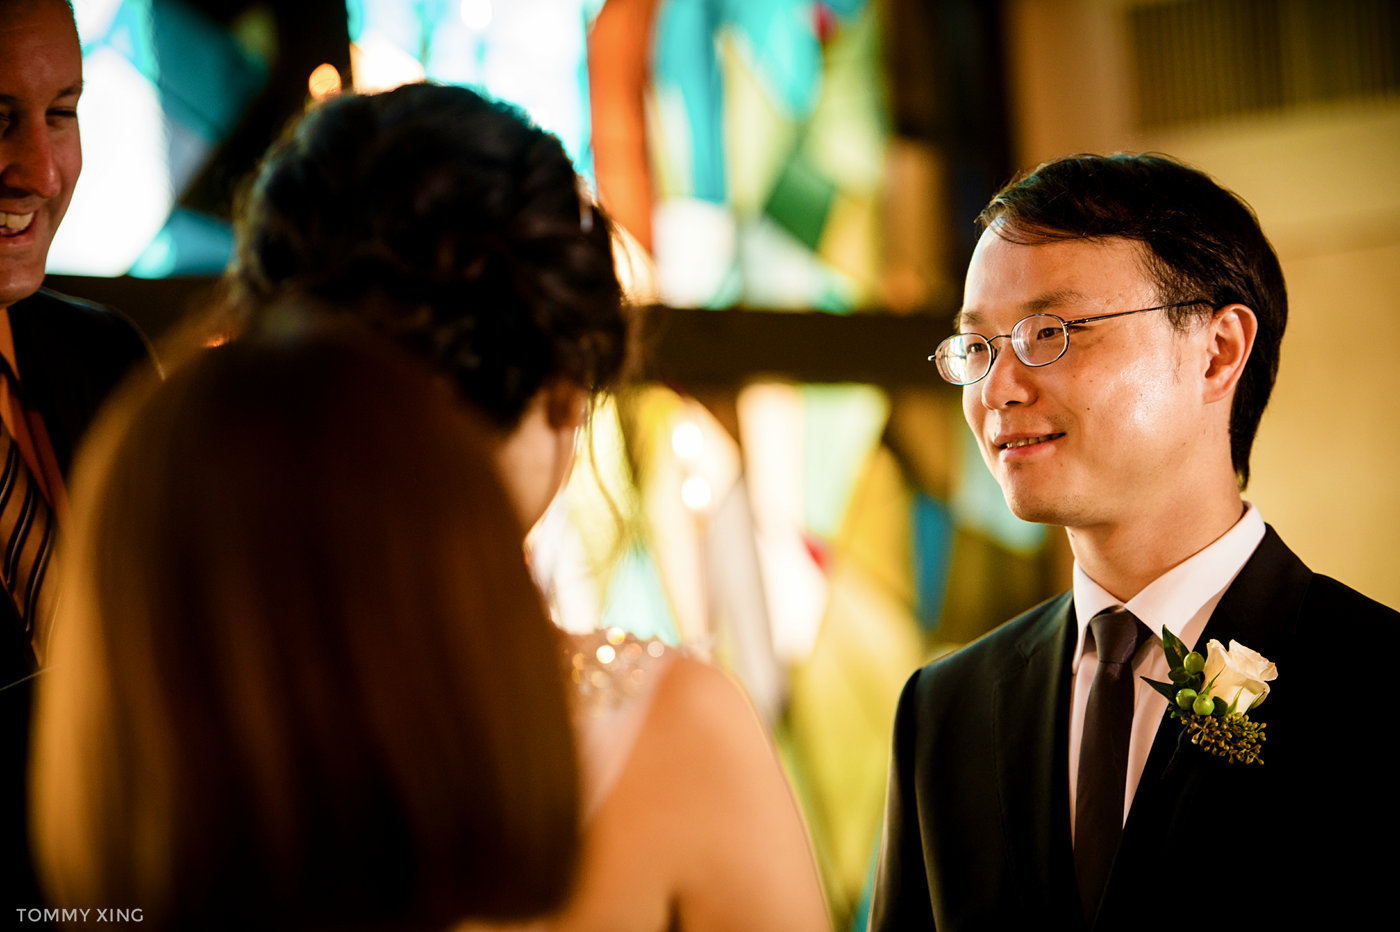 Qinglu Meng & Daozheng Chen Wedding Slideshow-127-E.JPG